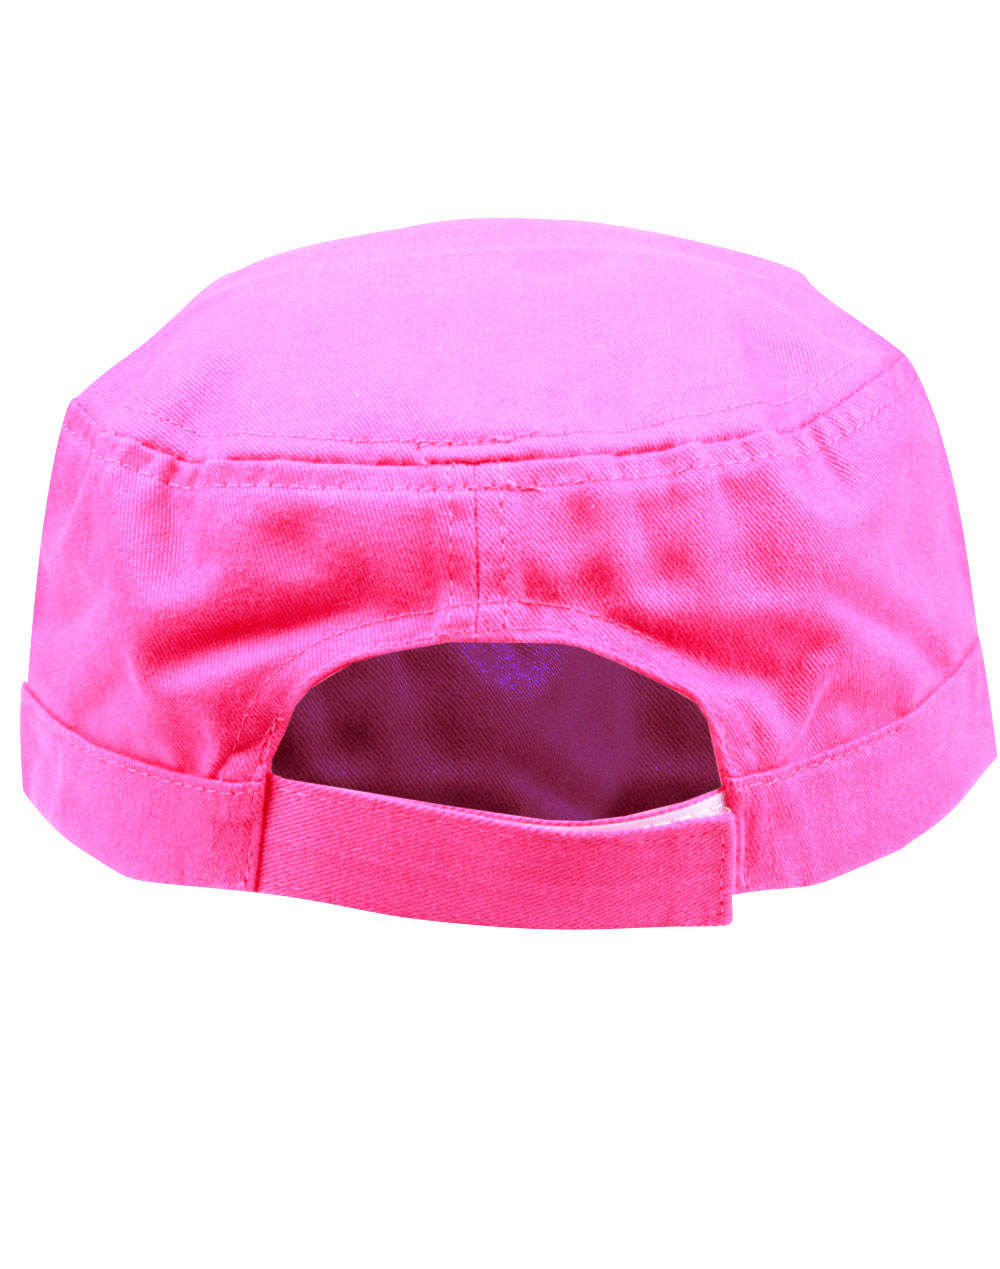 https://s3-ap-southeast-1.amazonaws.com/ws-imgs/CAPS/CH46_HOTPINK_Back.jpg